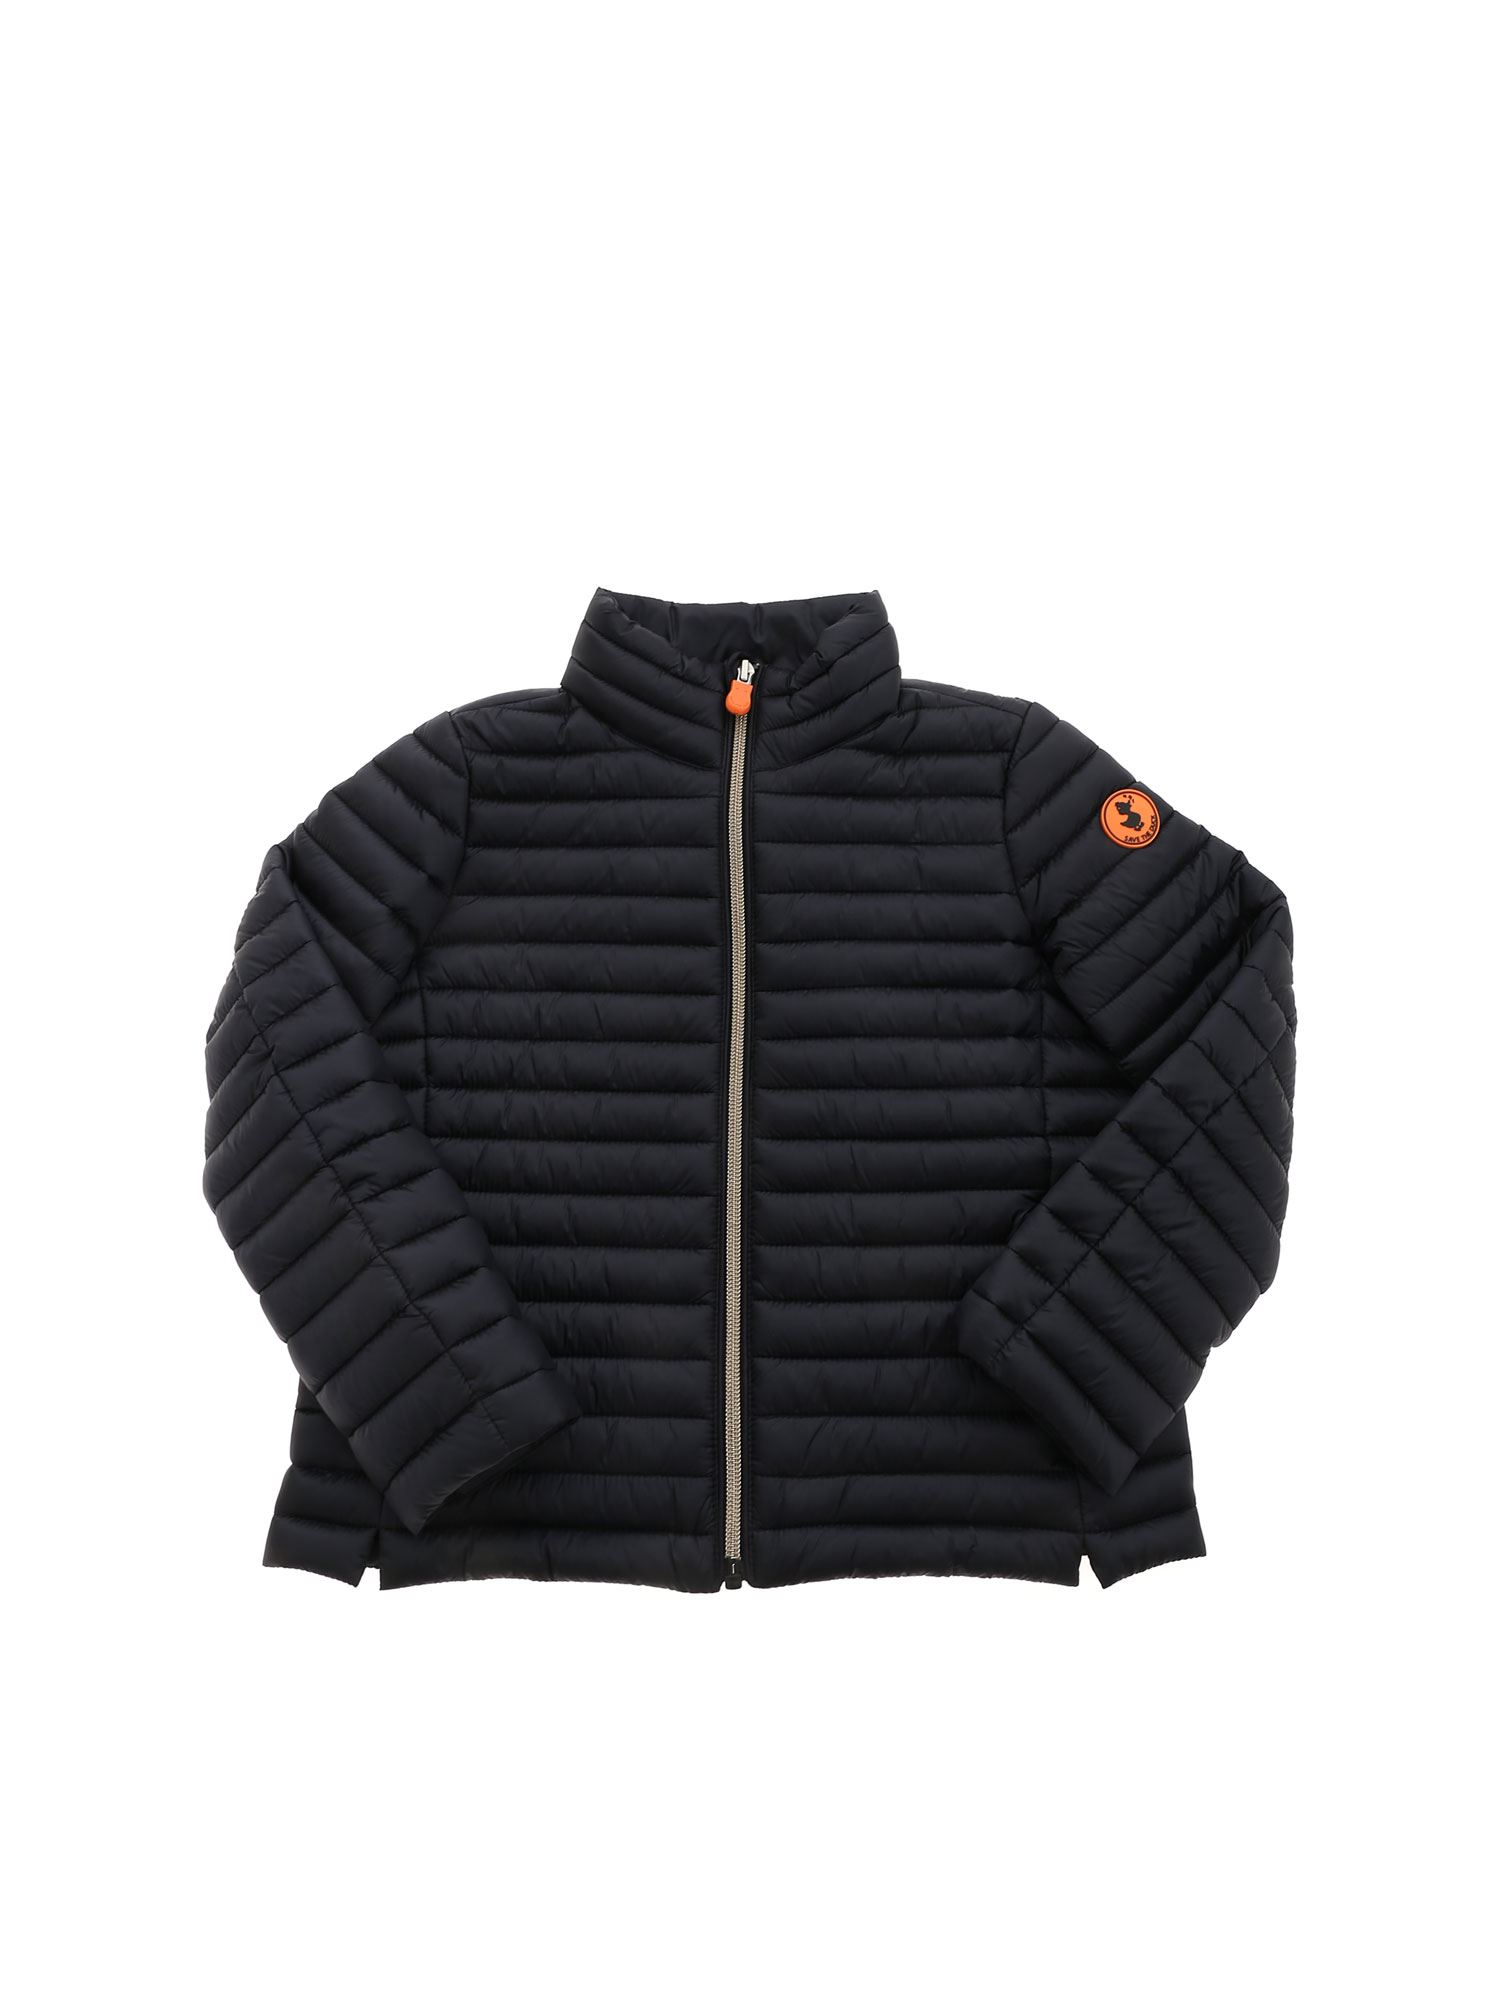 Save The Duck QUILTED PUFFER JACKET IN BLACK